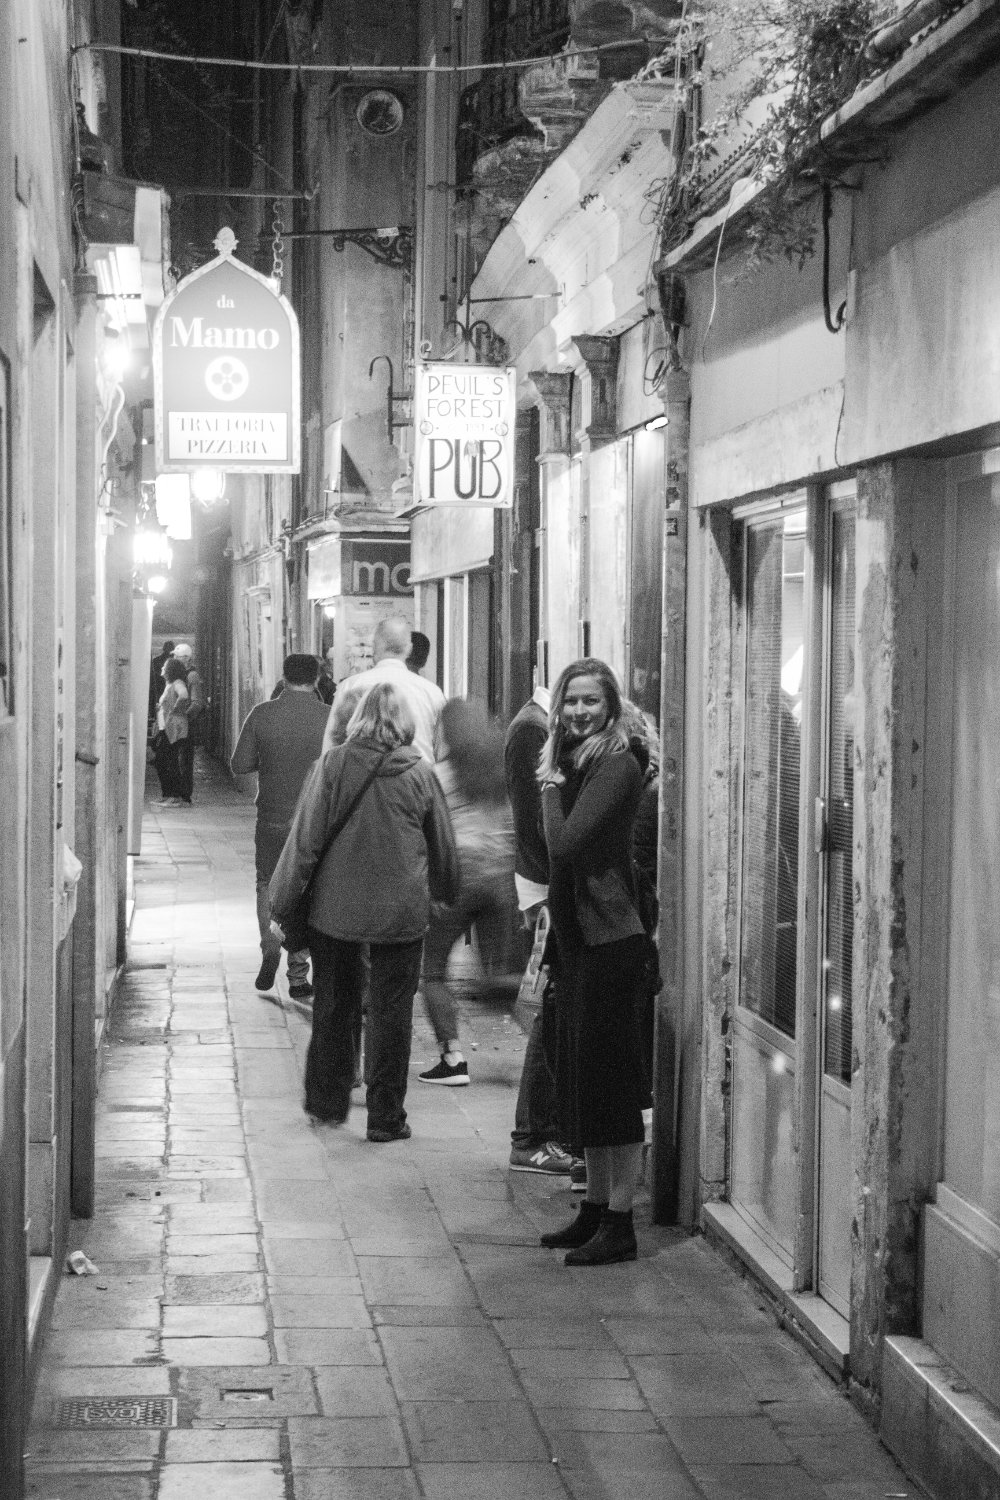 One of the small shopping alleys